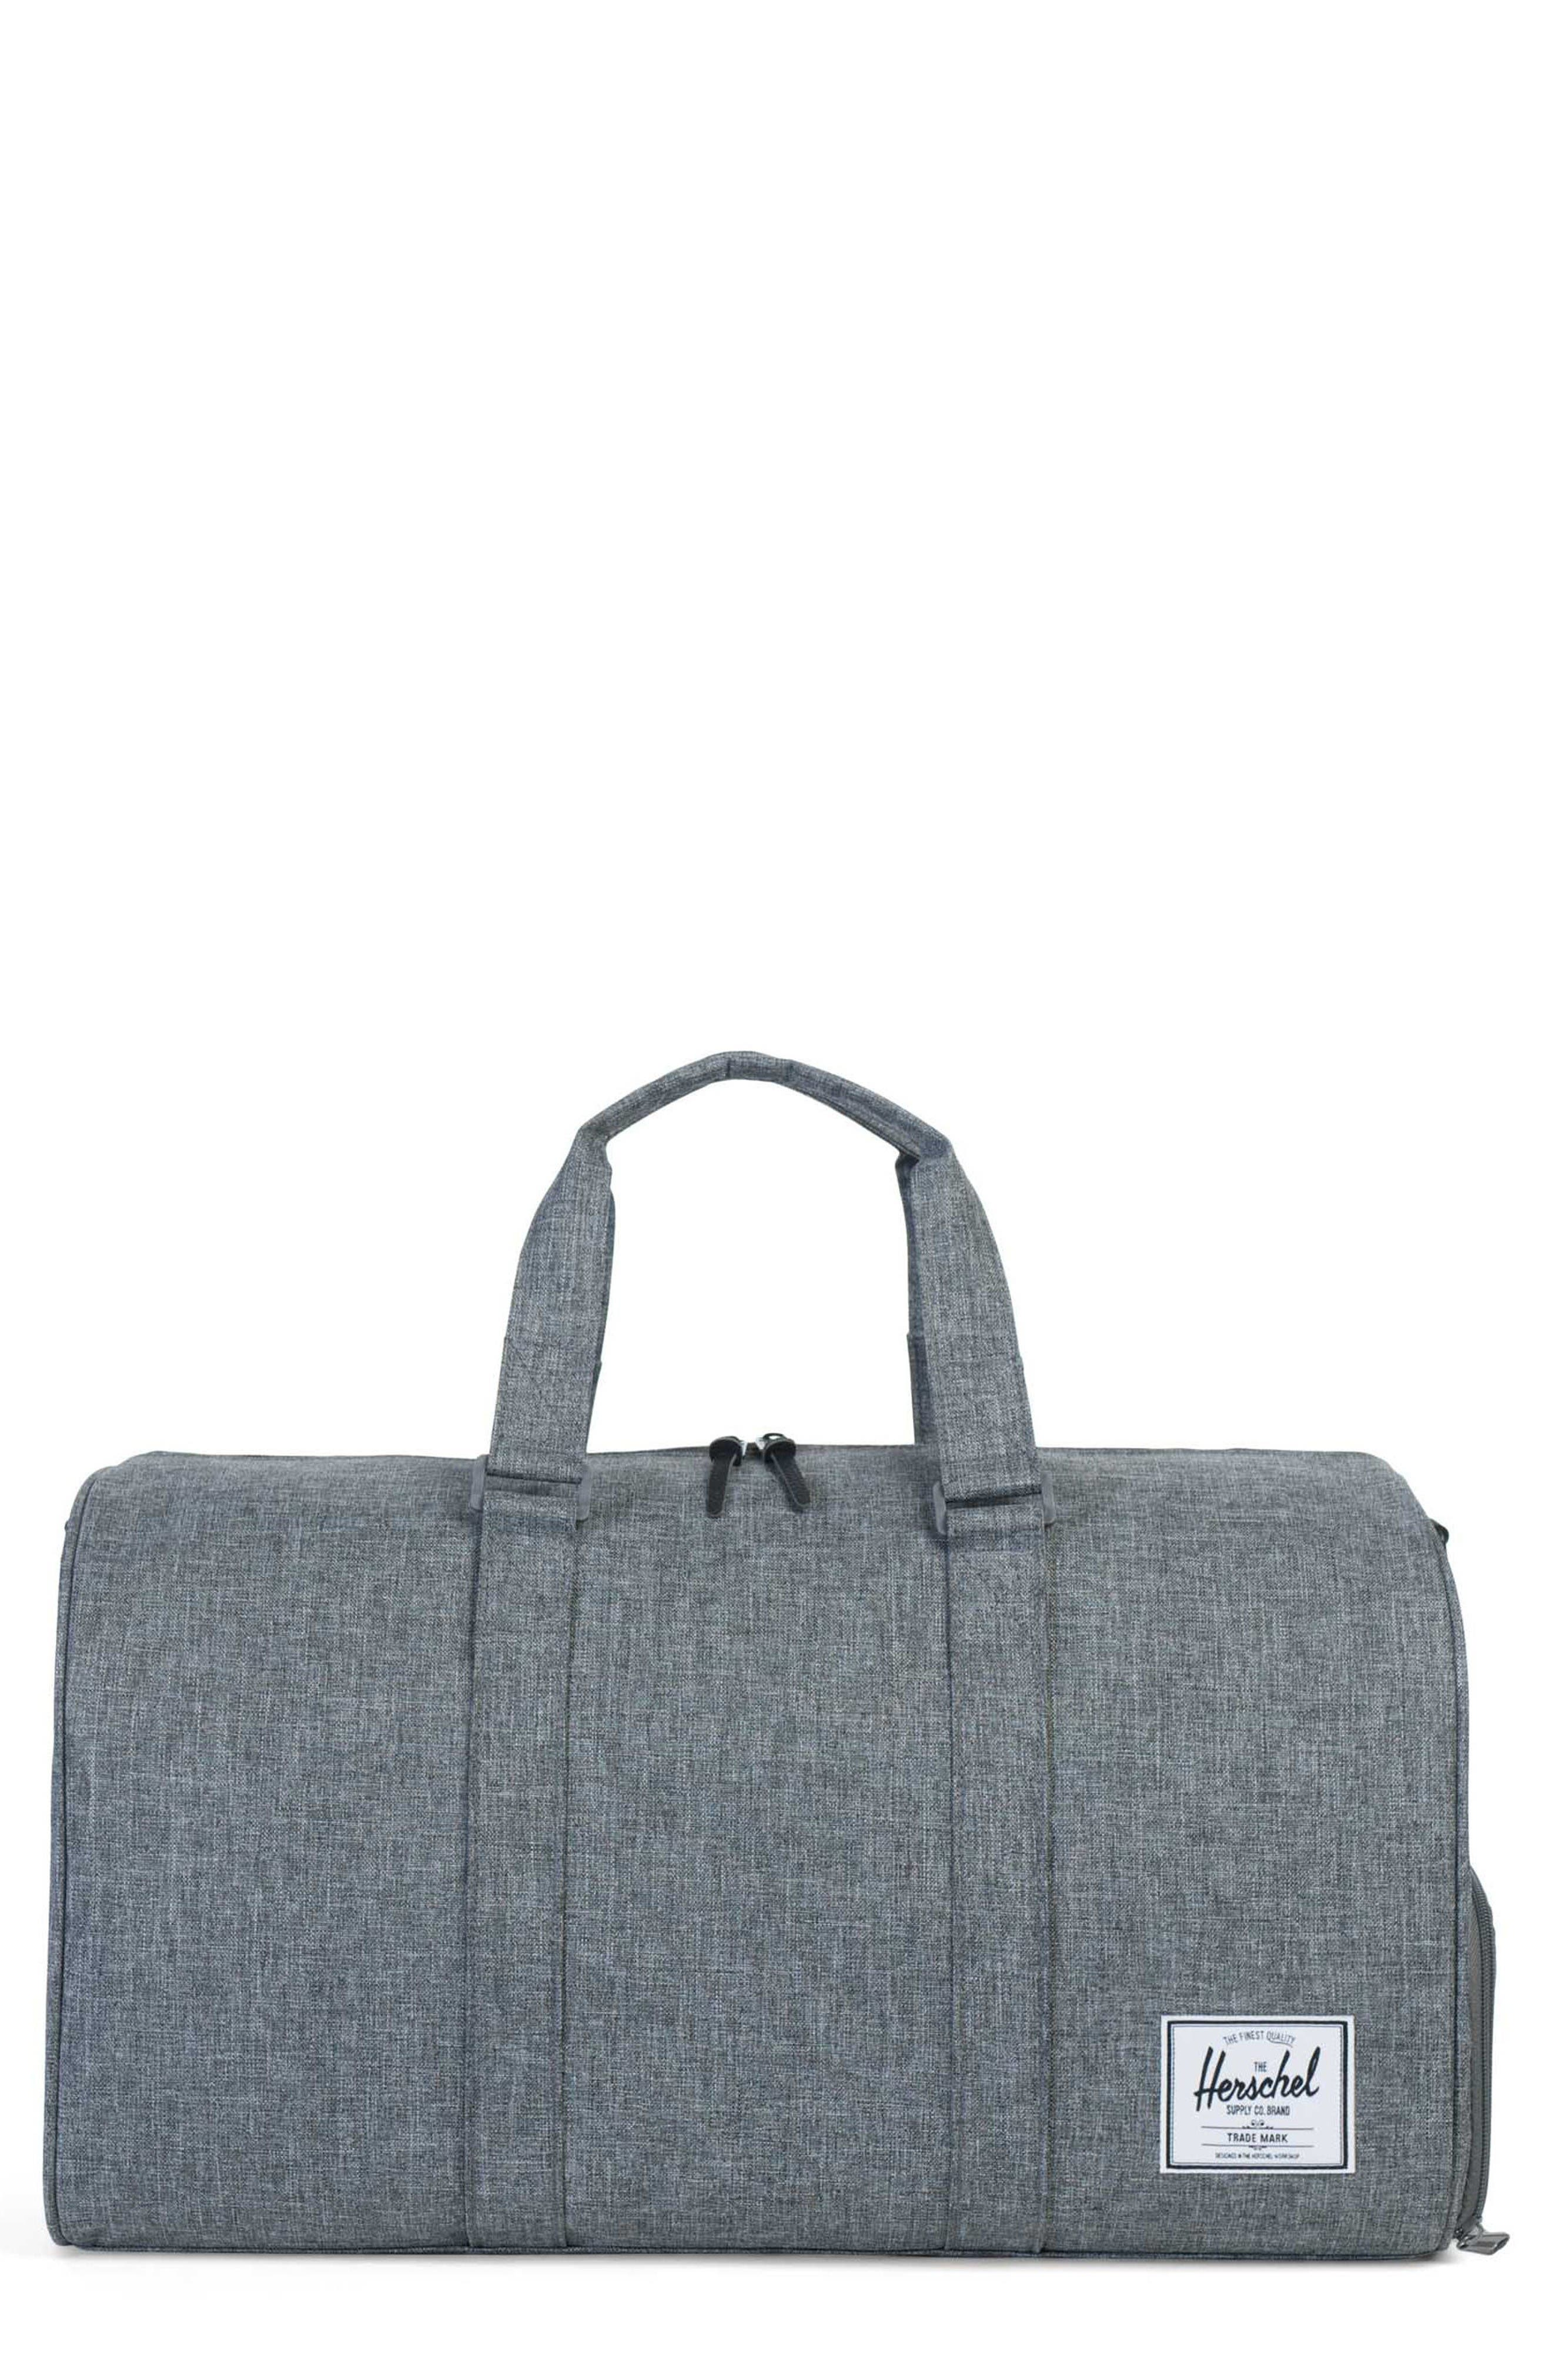 Alternate Image 1 Selected - Herschel Supply Co. Novel Duffel Bag